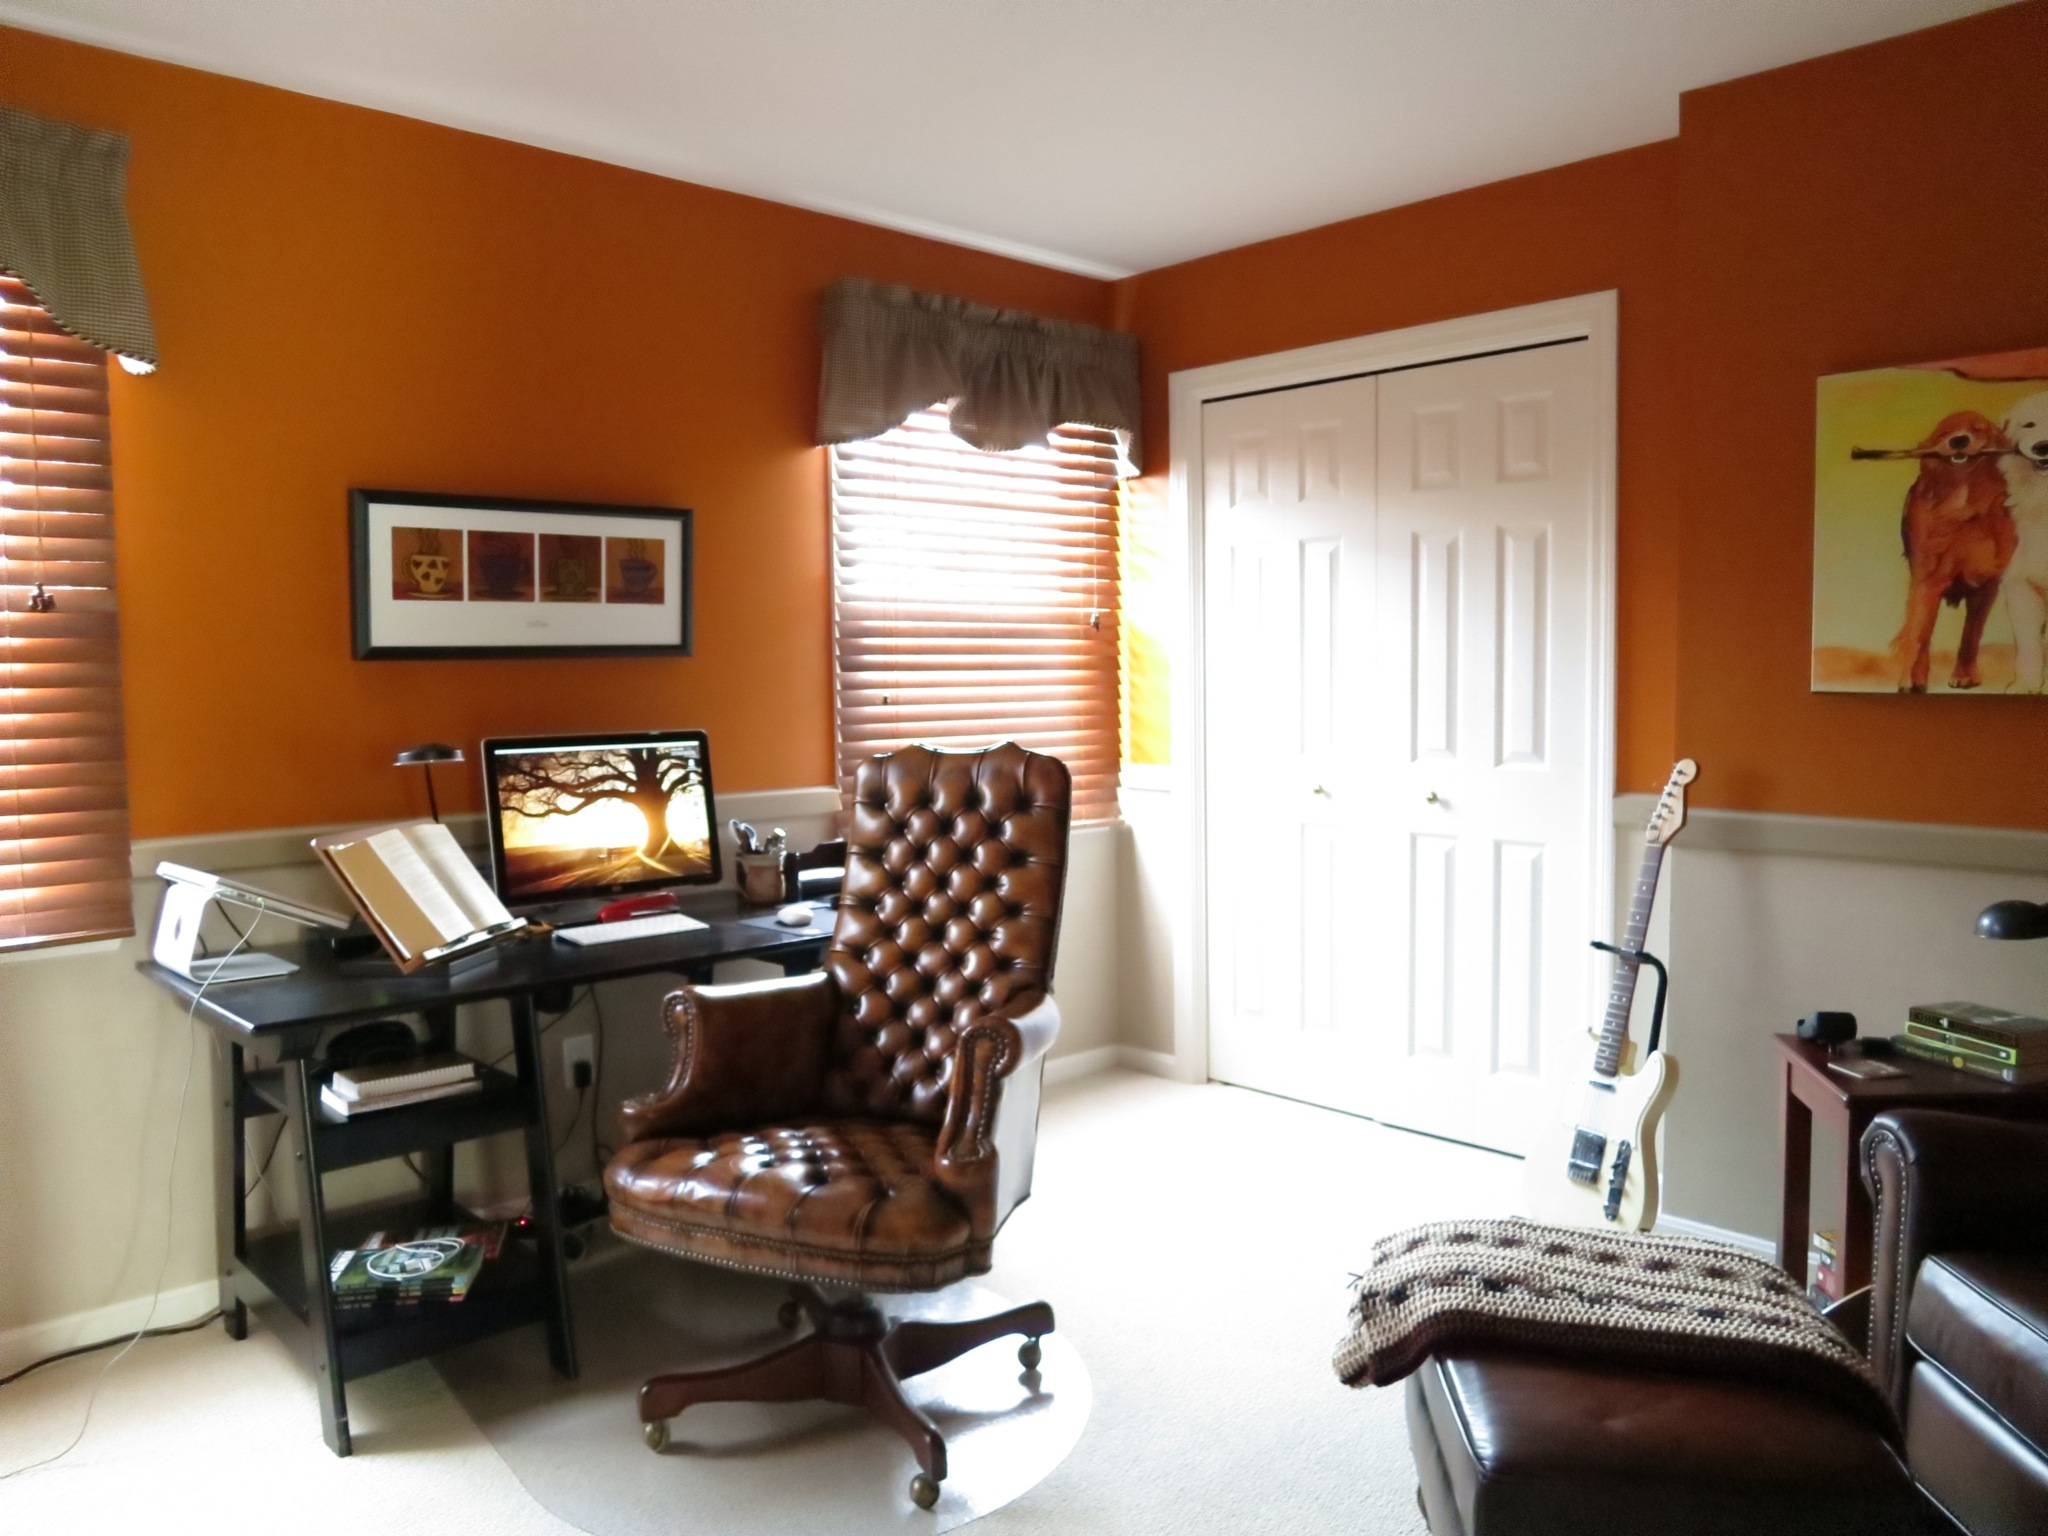 The fourth bedroom is currently set up as an office.